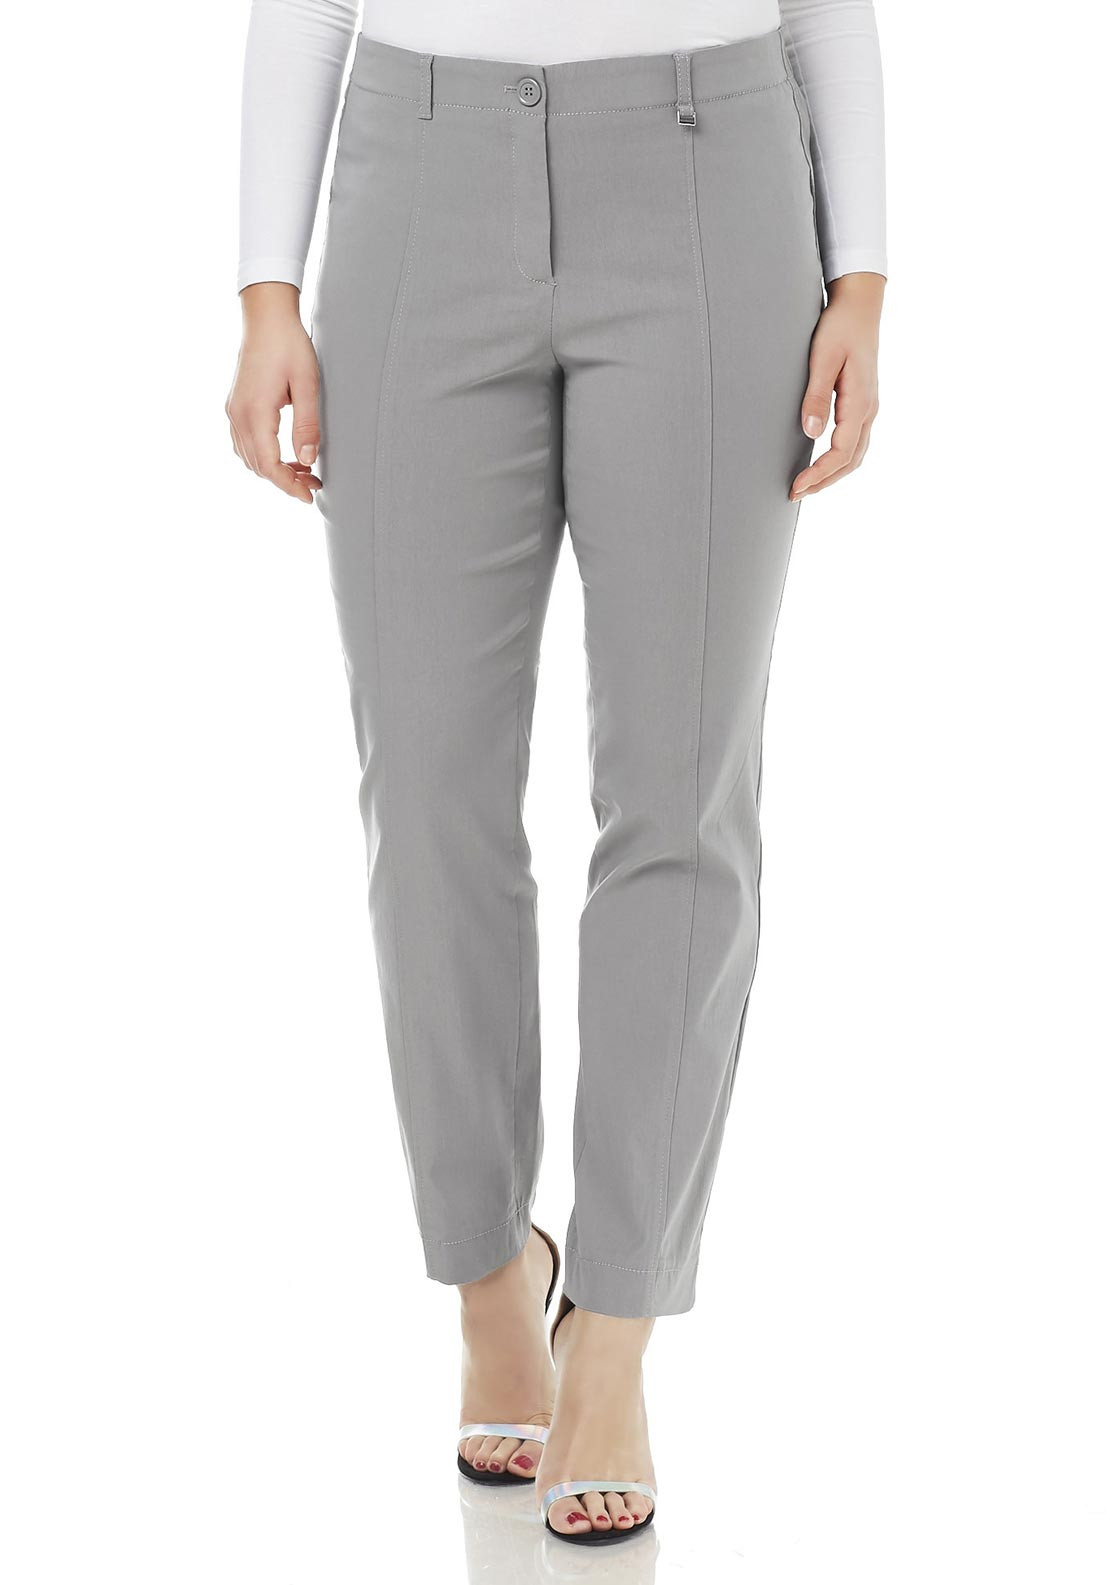 Samoon Betty Super Stretch Slim Fit Trousers, Grey